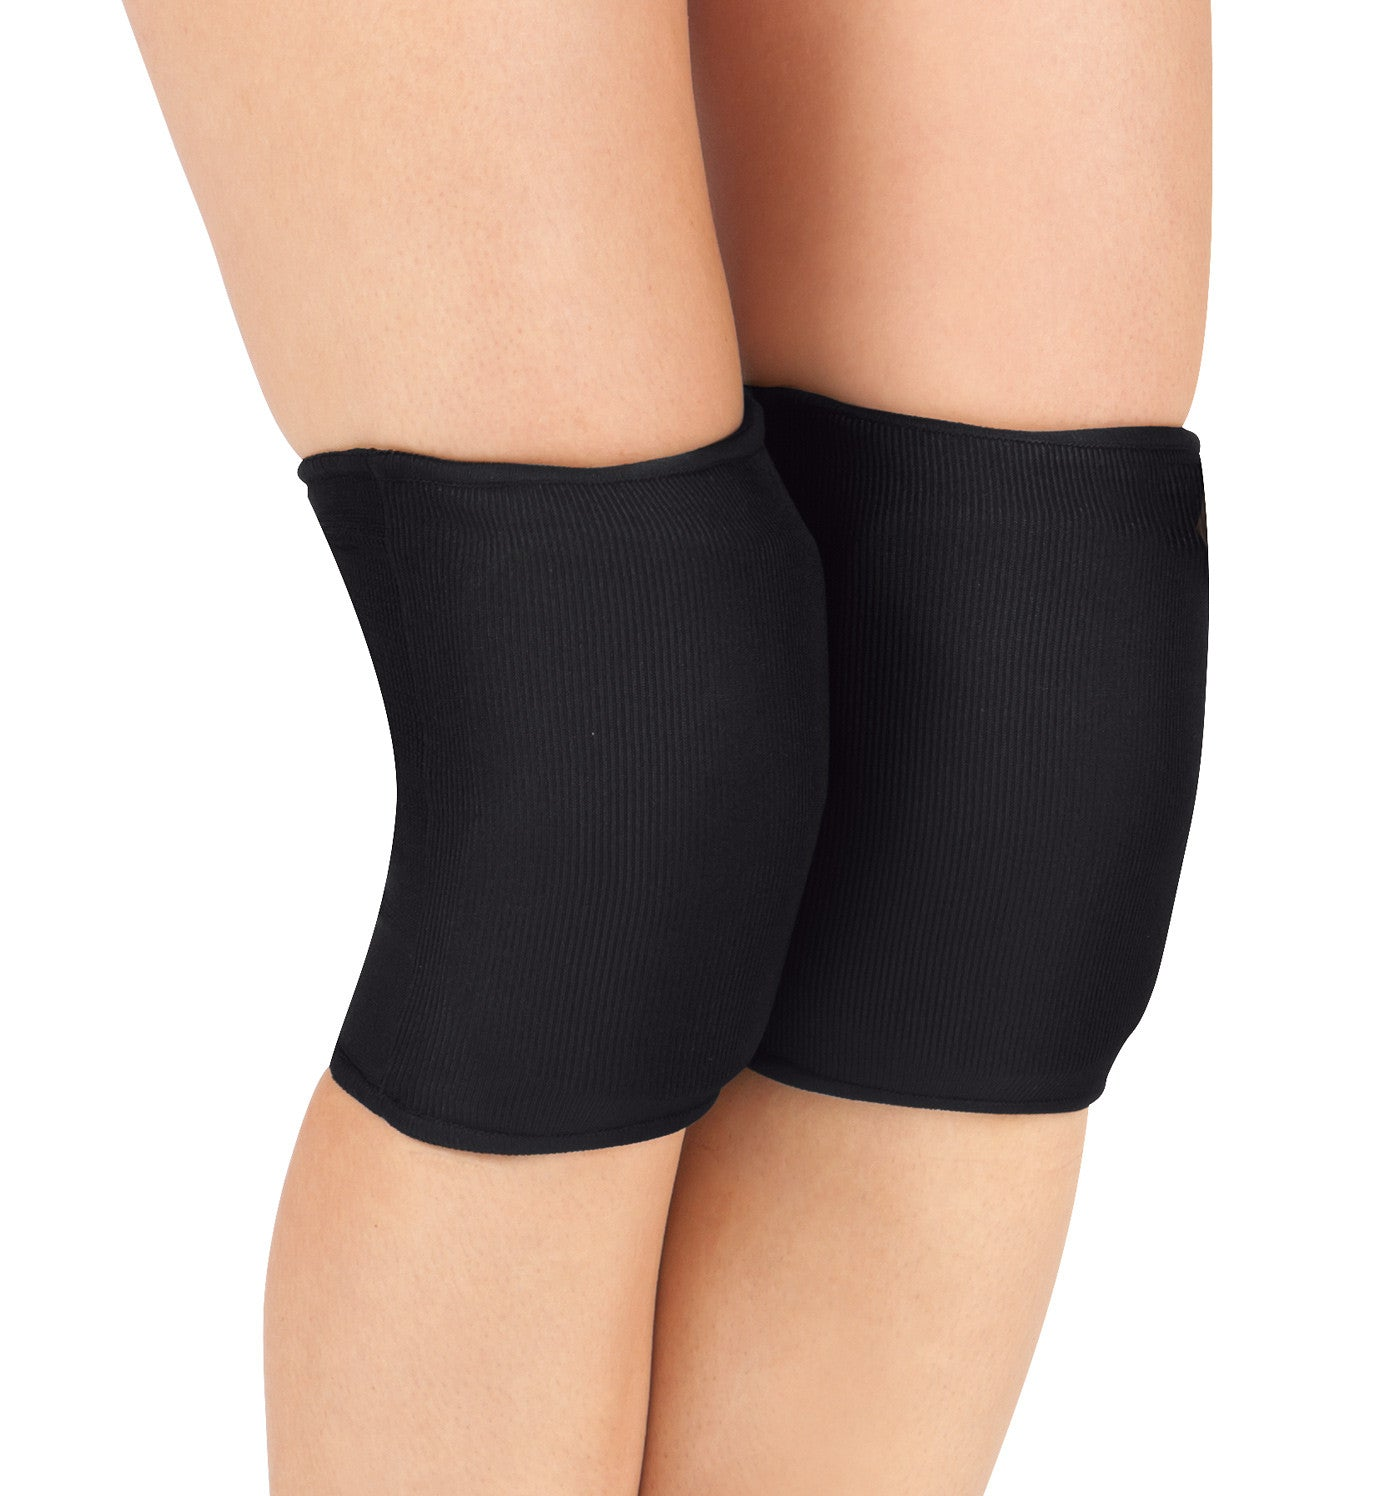 Body Basic Black Knee or Elbow Pads